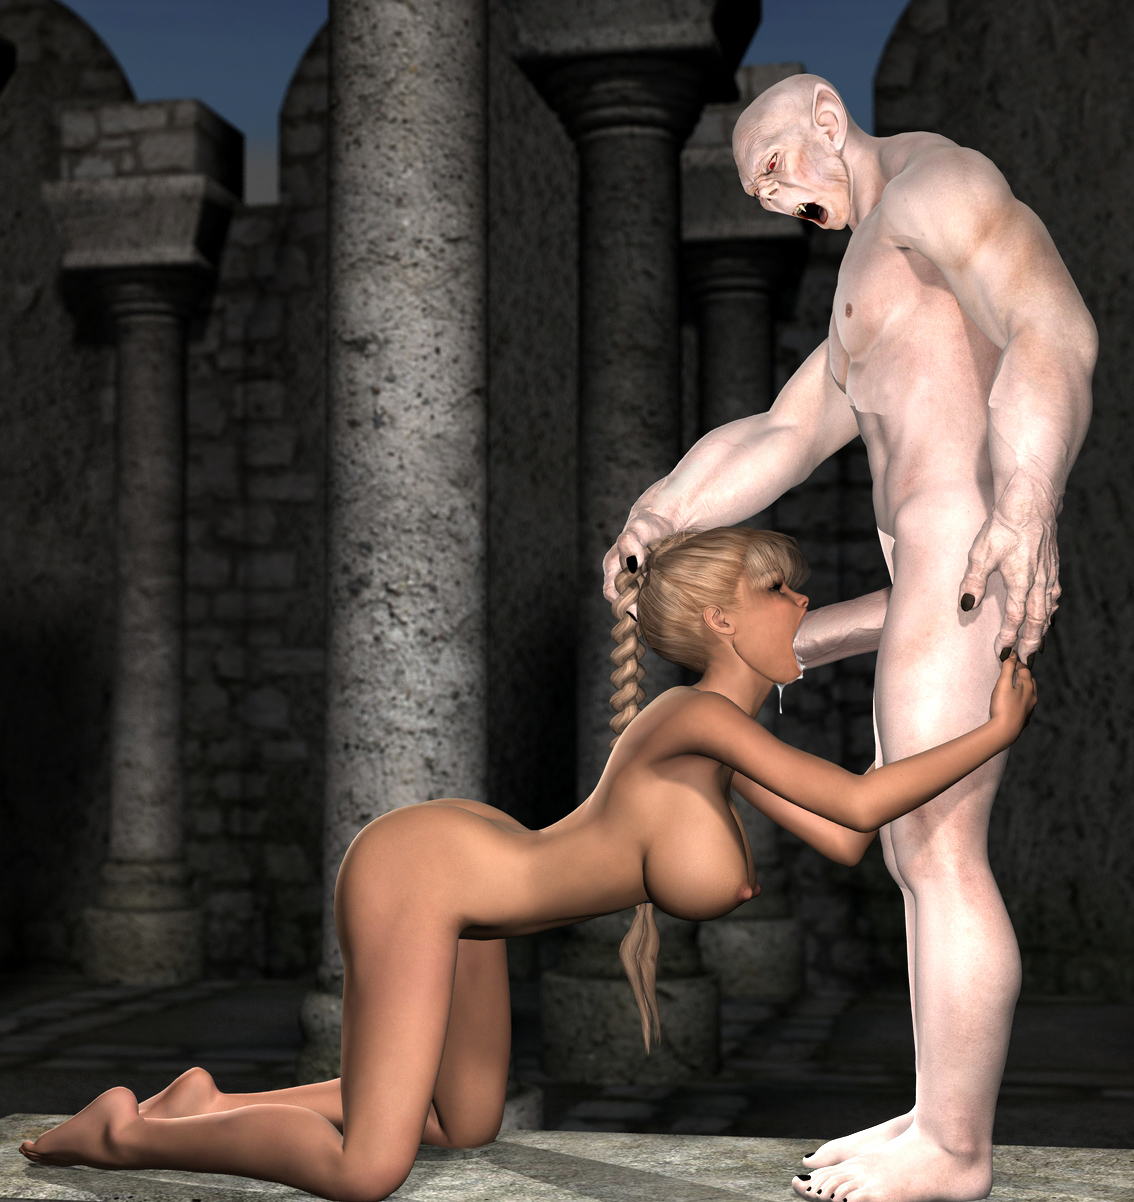 Sexy girl sexs monster 3d pict nudes picture